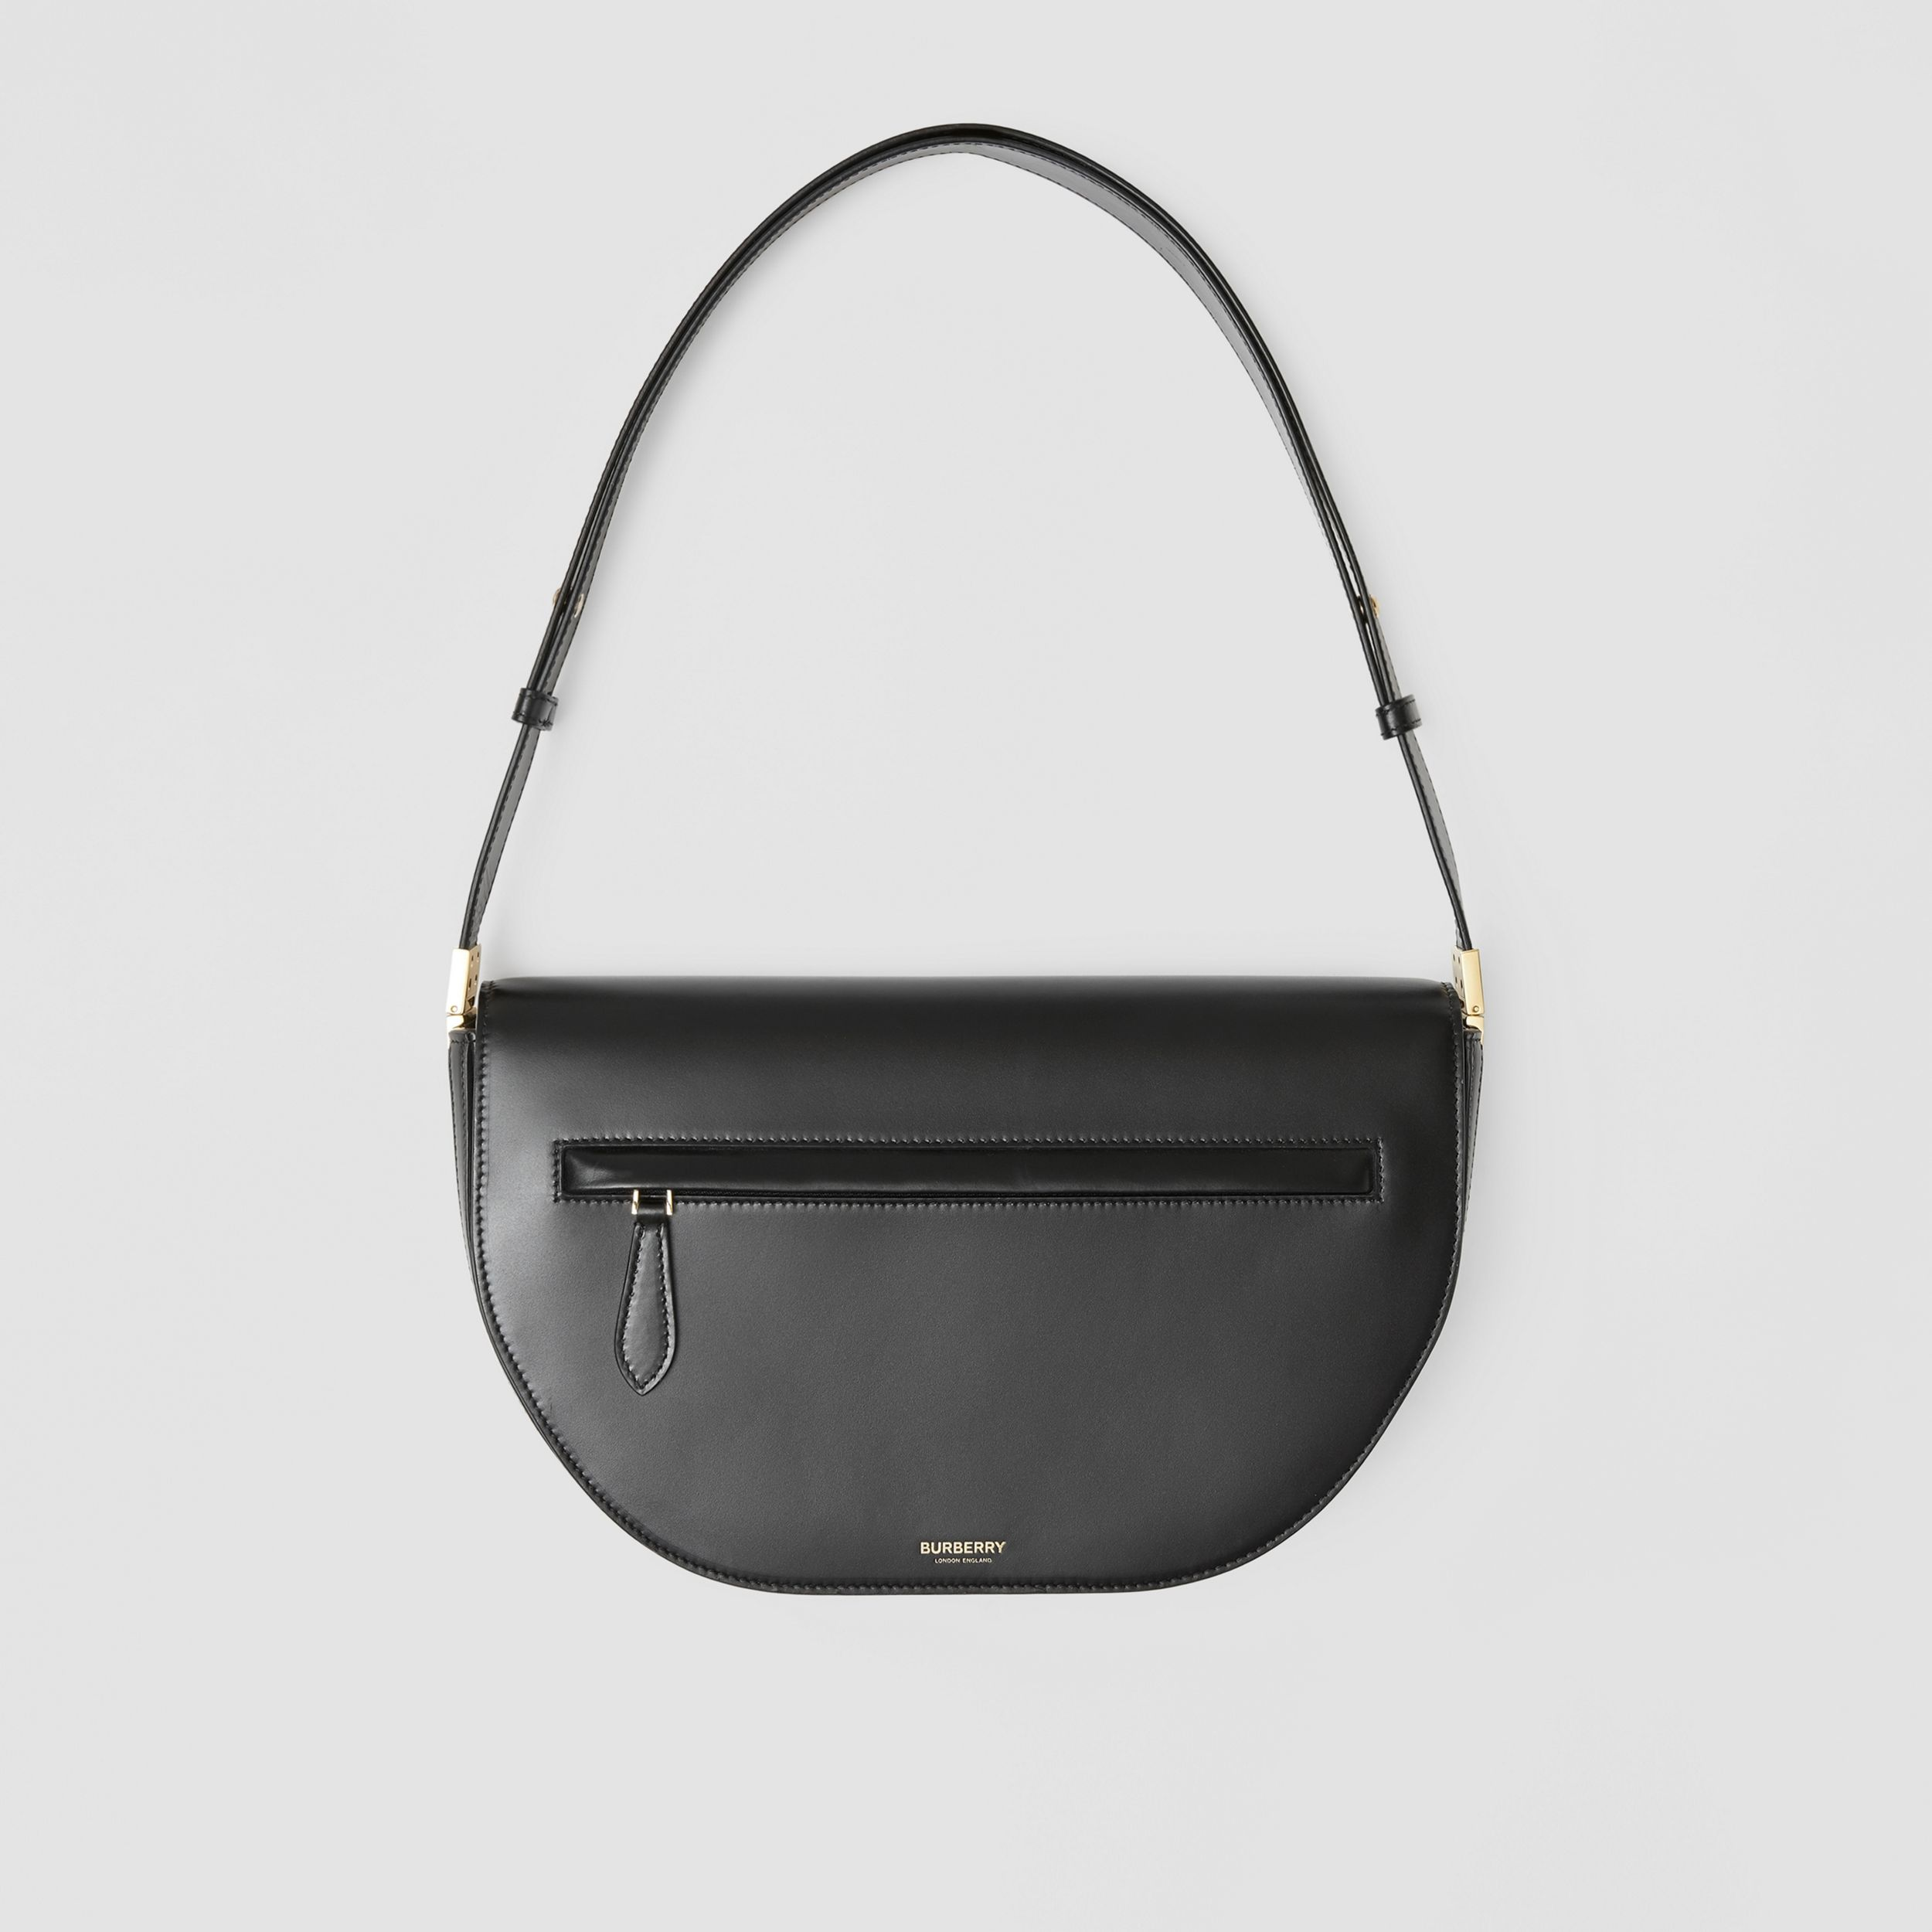 Medium Leather Olympia Bag in Black | Burberry Canada - 1